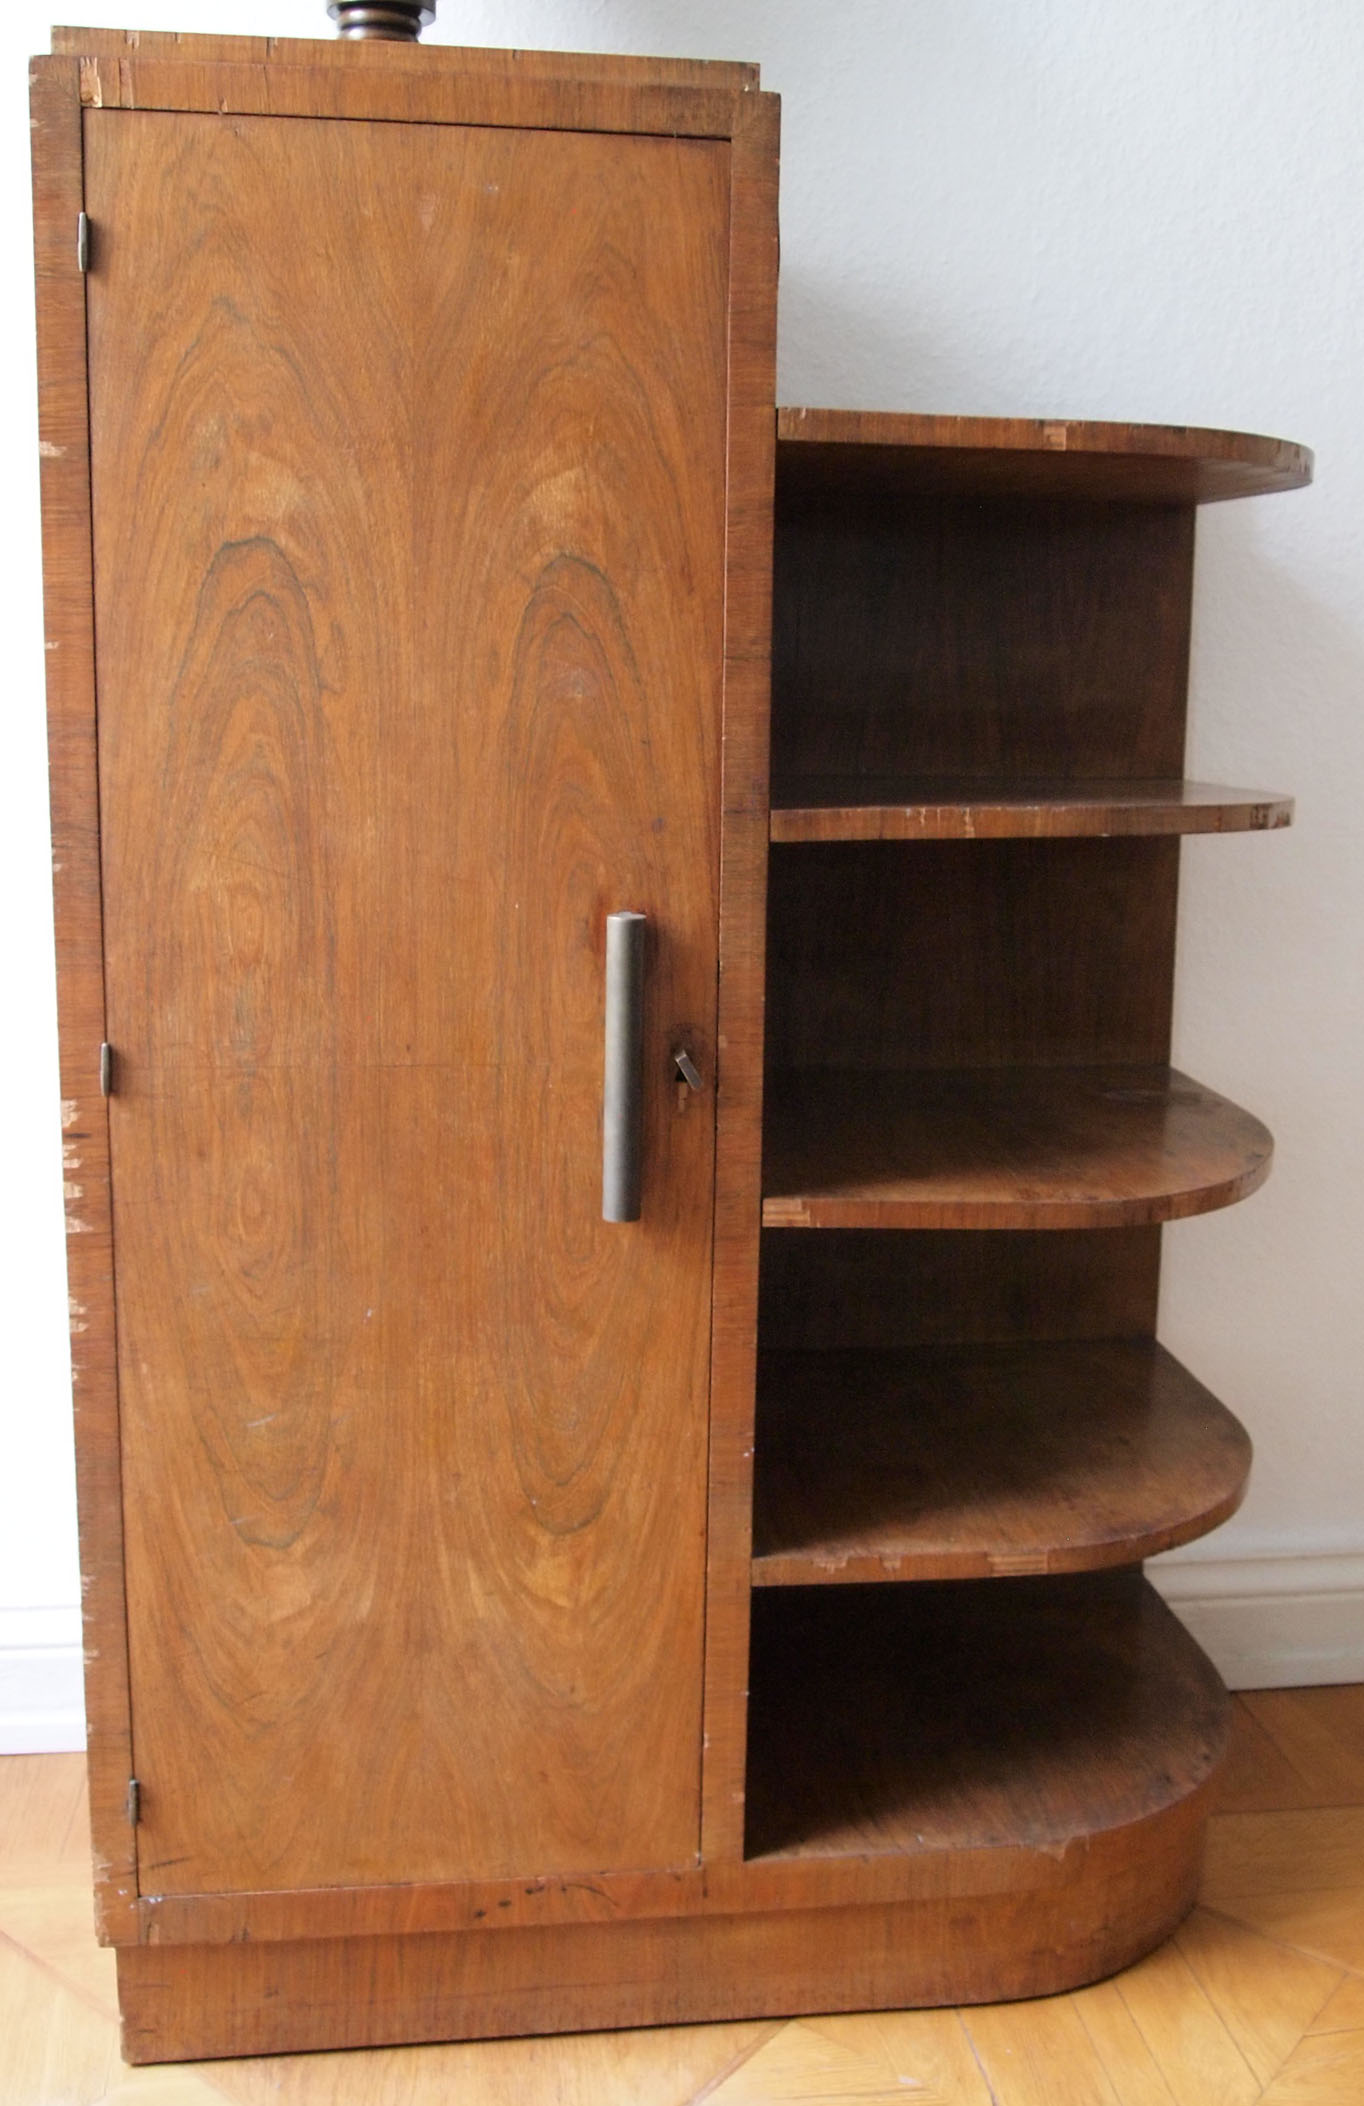 art deco design objekt schrank mit regal nussbaum 1930er jahre wundersch n ebay. Black Bedroom Furniture Sets. Home Design Ideas